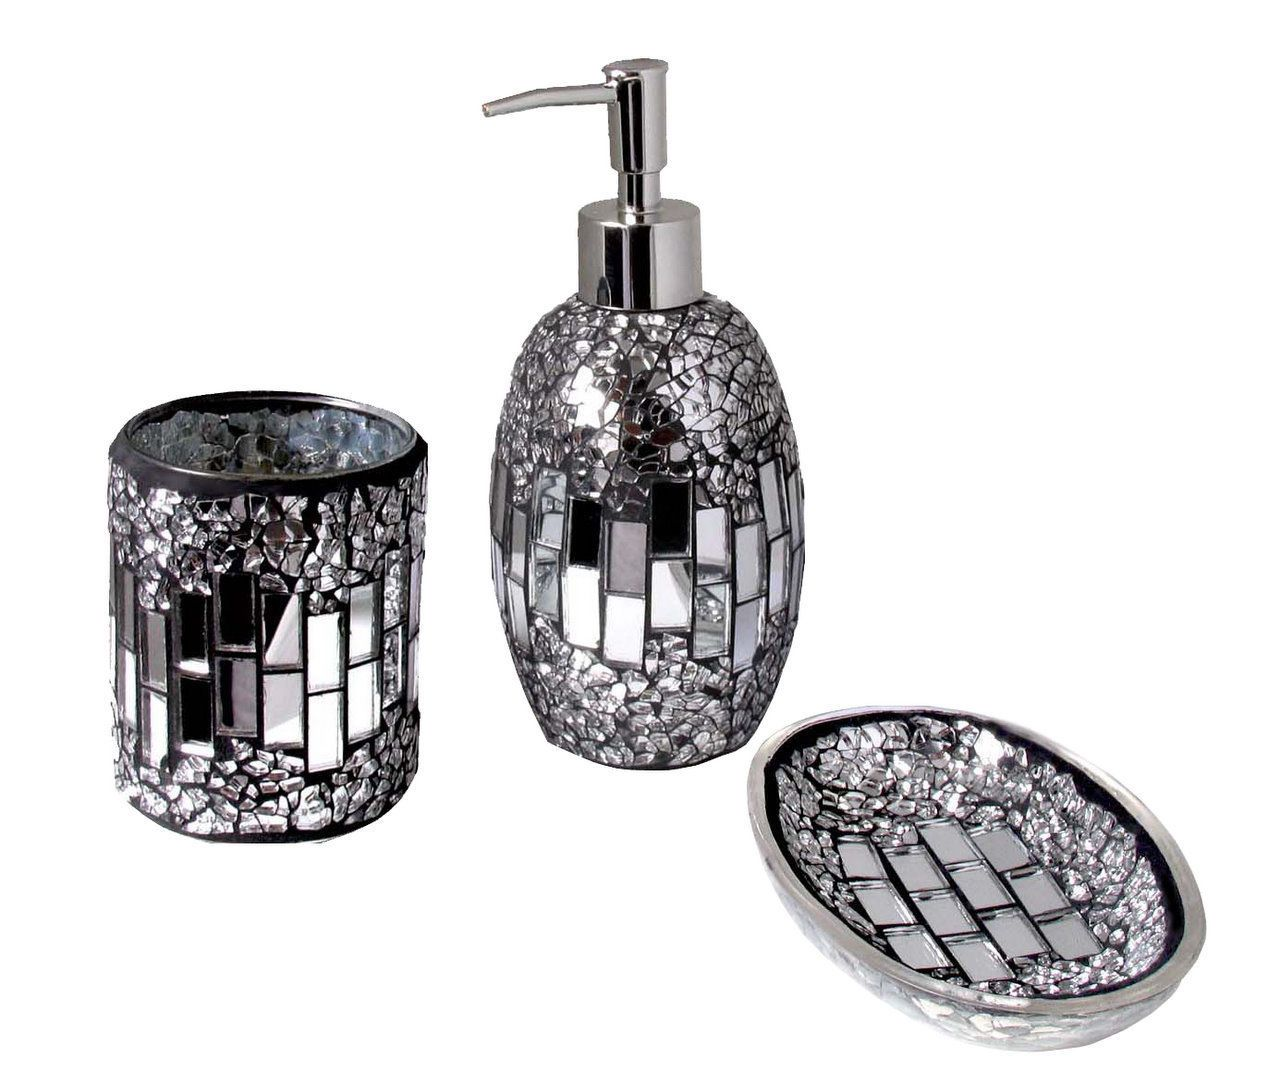 Mercury glass bathroom accessories - 3pc Modern Silver Black Sparkle Mosaic Glass Tile Bathroom Accessory Set Deco